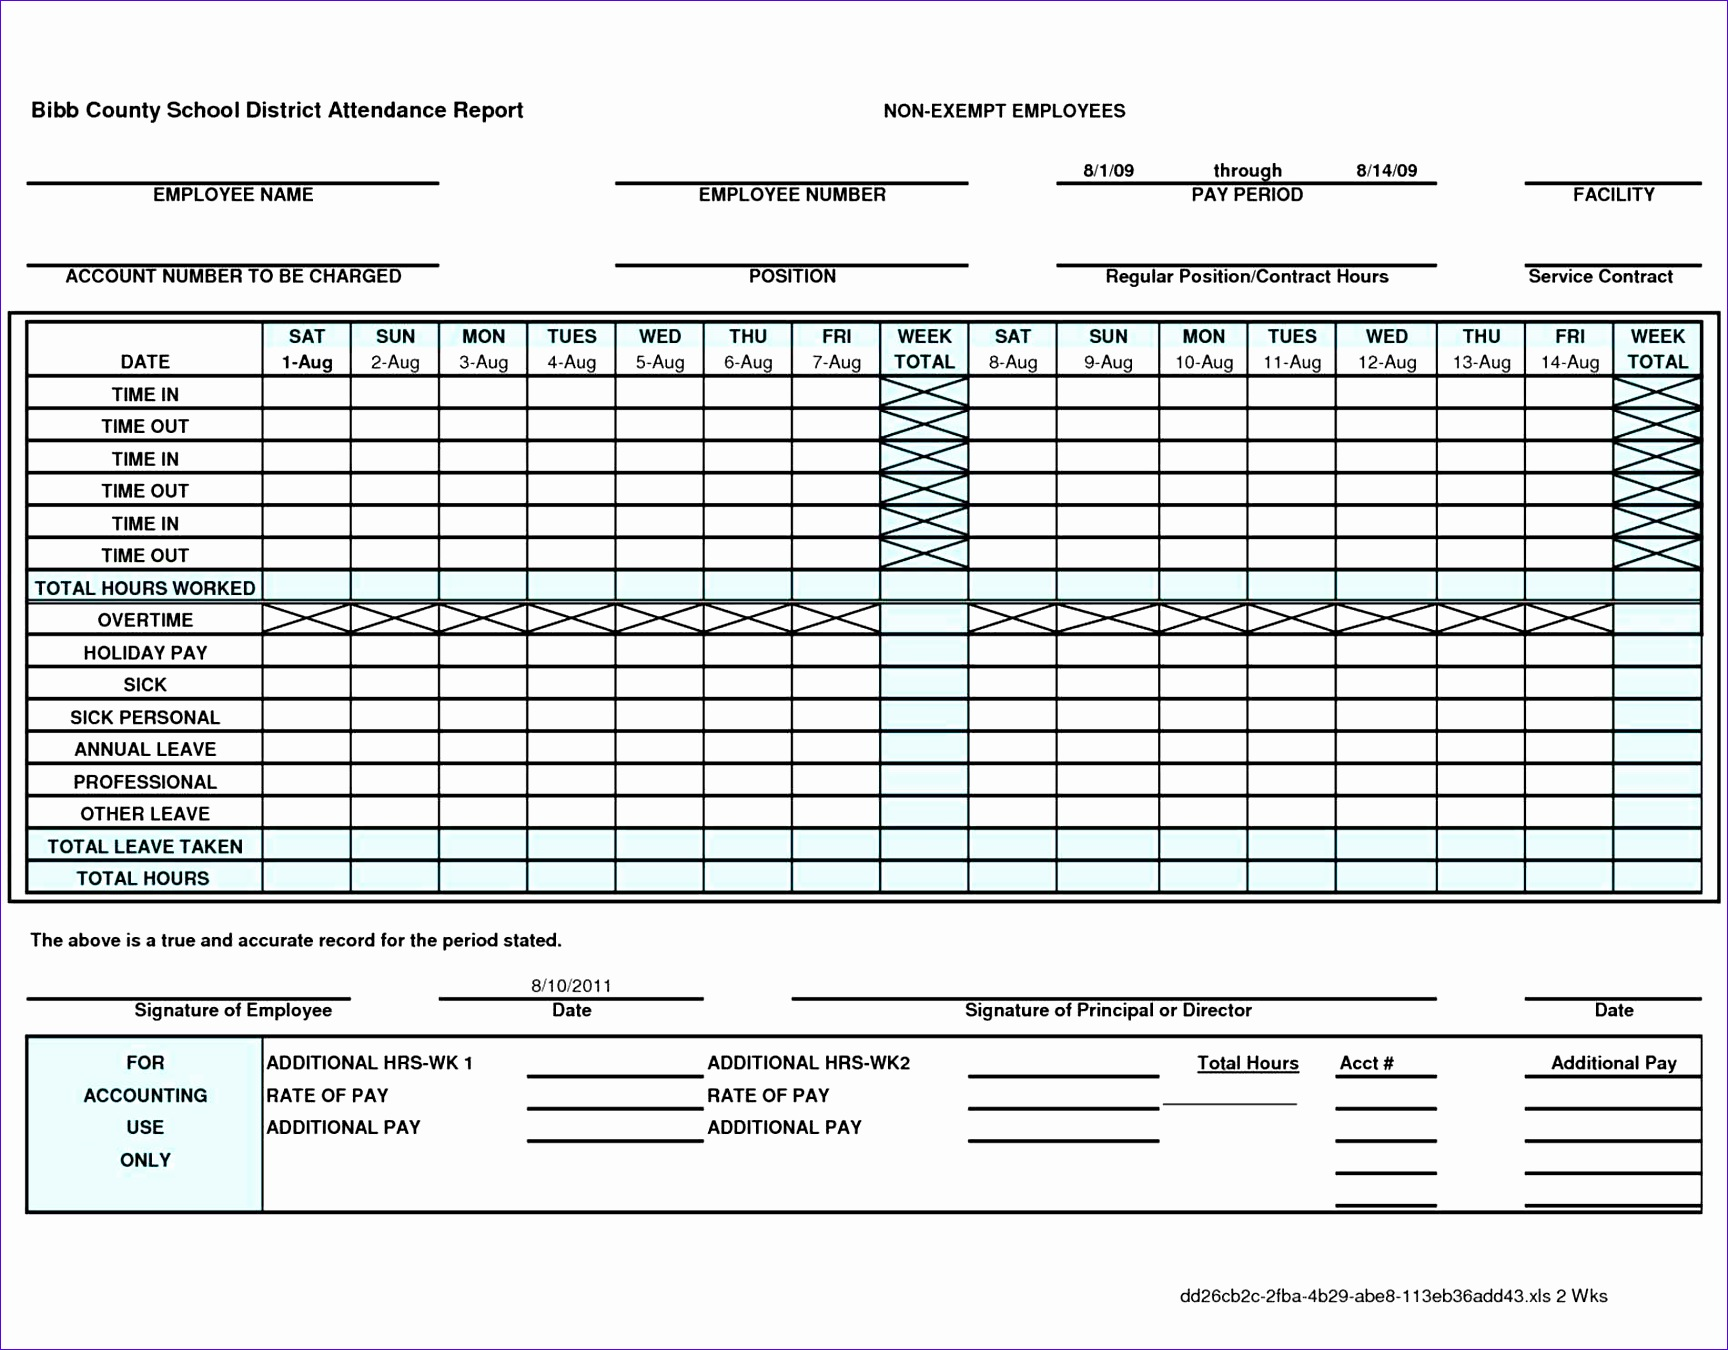 10 monthly payment excel template exceltemplates for Monthly amortization schedule excel template